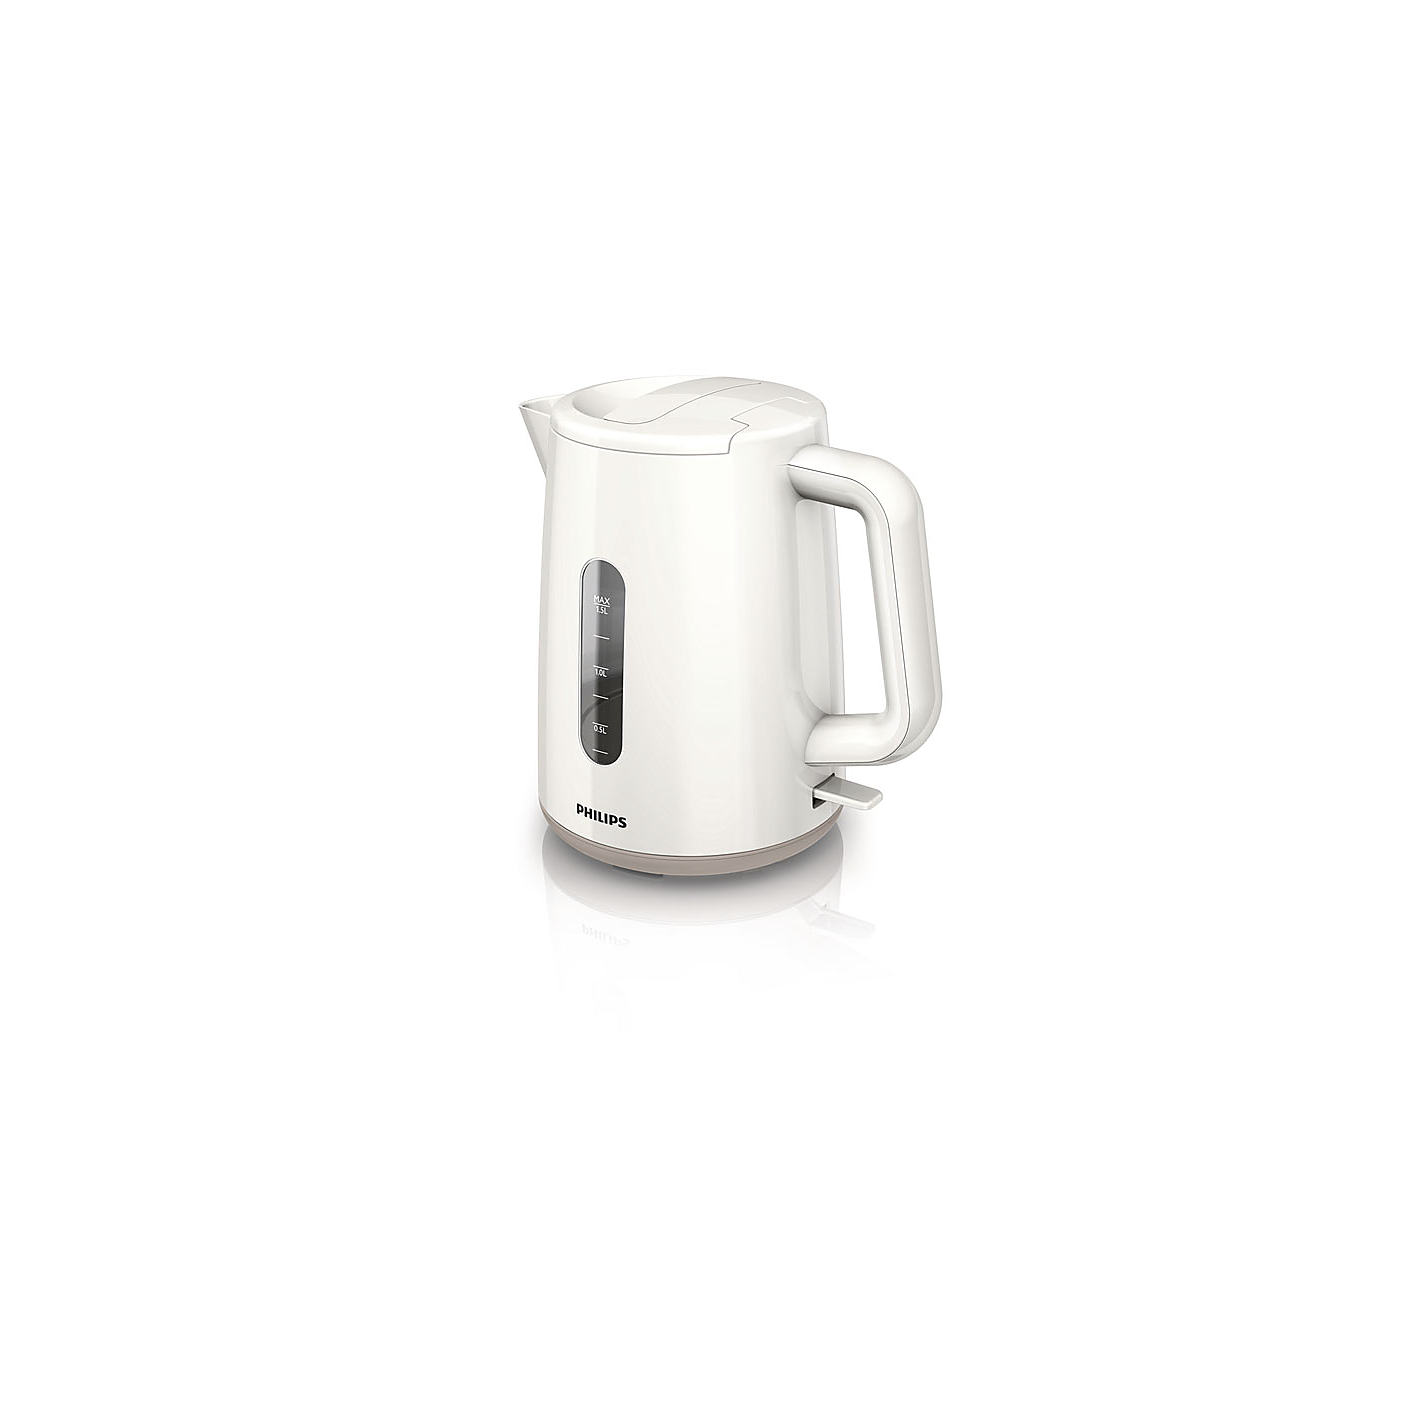 Philips HD9300/90 Daily Collection Kettle, 1.5 Litre